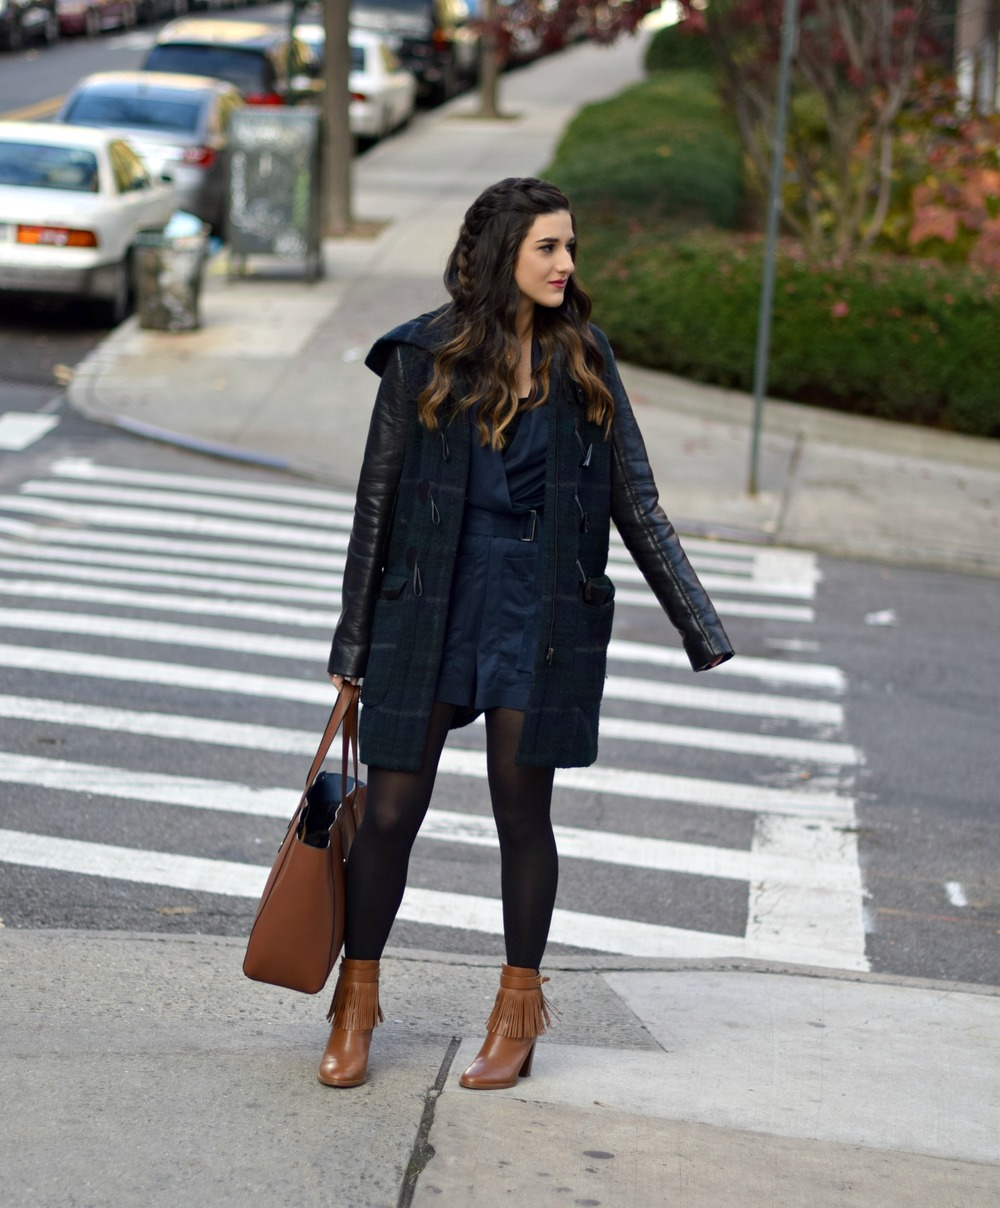 Navy Romper Fringe Booties Louboutins & Love Fashion Blog Esther Santer NYC Street Style Blogger Zara Plaid Coat Leather Sleeves Girl Women OOTD Outfit Soho Tote Ivanka Trump Accessories Shoes Boots Winter Black Tights Braid Hair Inspo Jewelry Rings.jpg